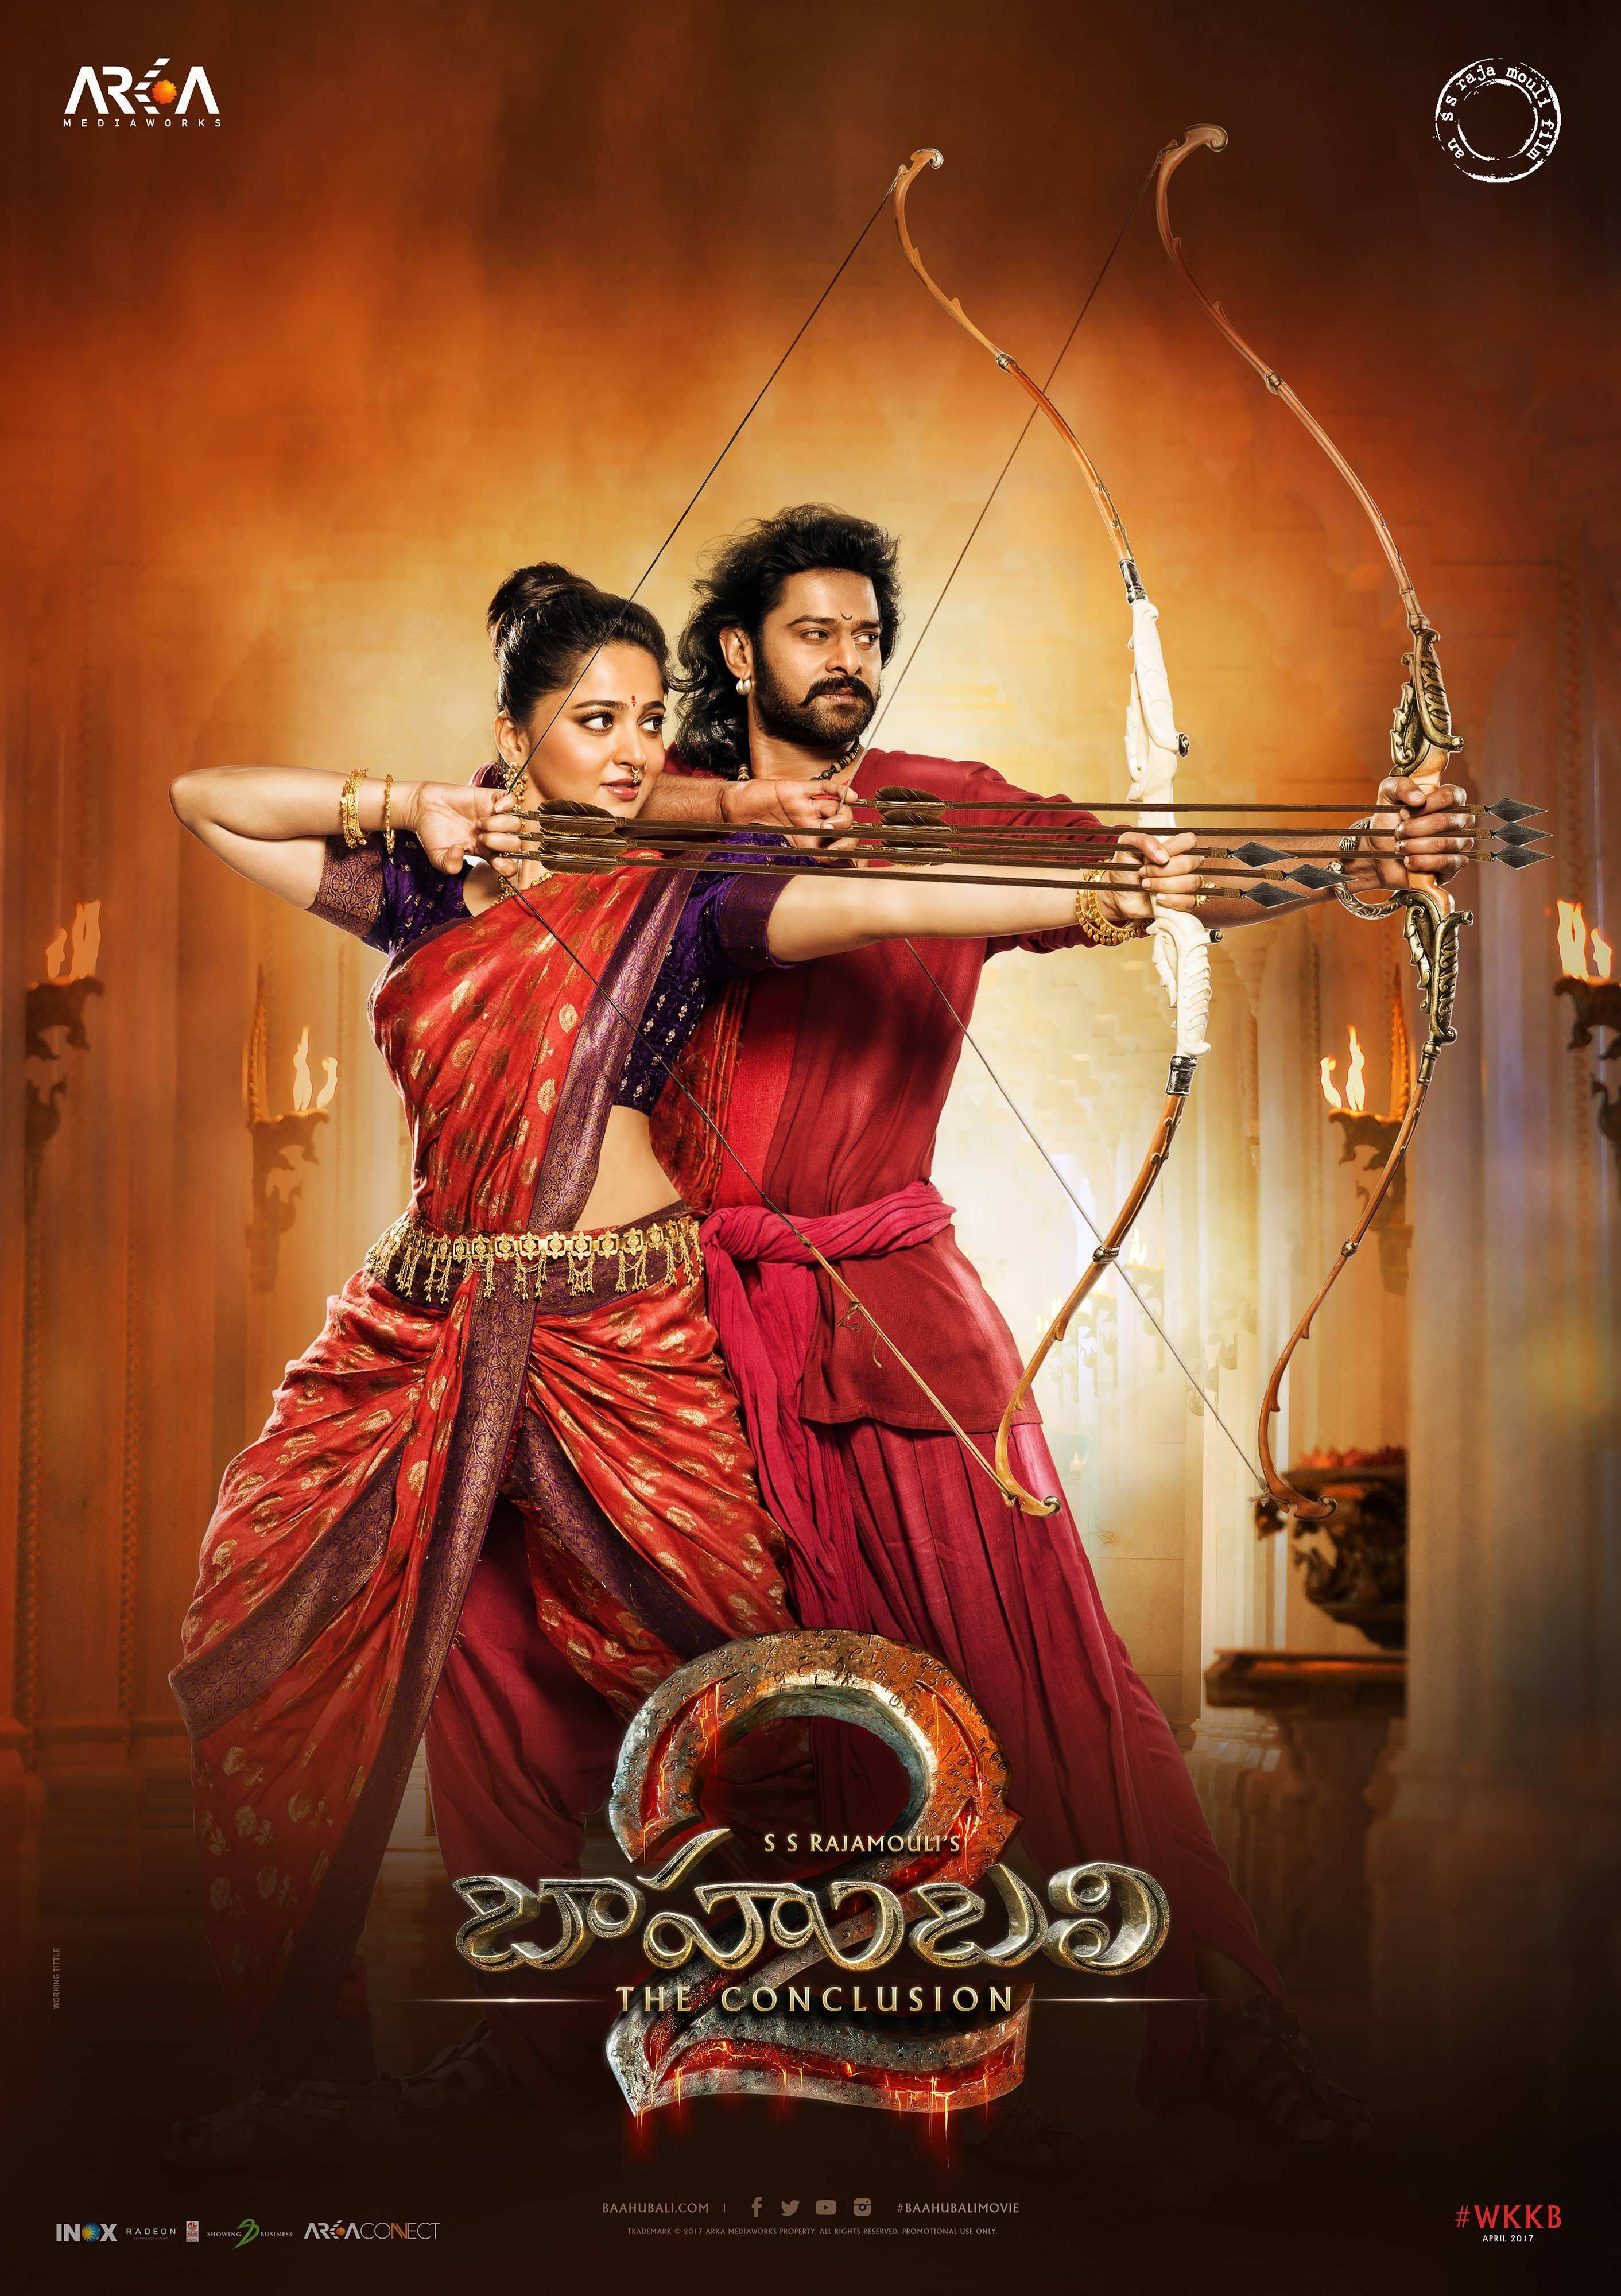 baahubali 2: the conclusion (2017) | indian movies | pinterest